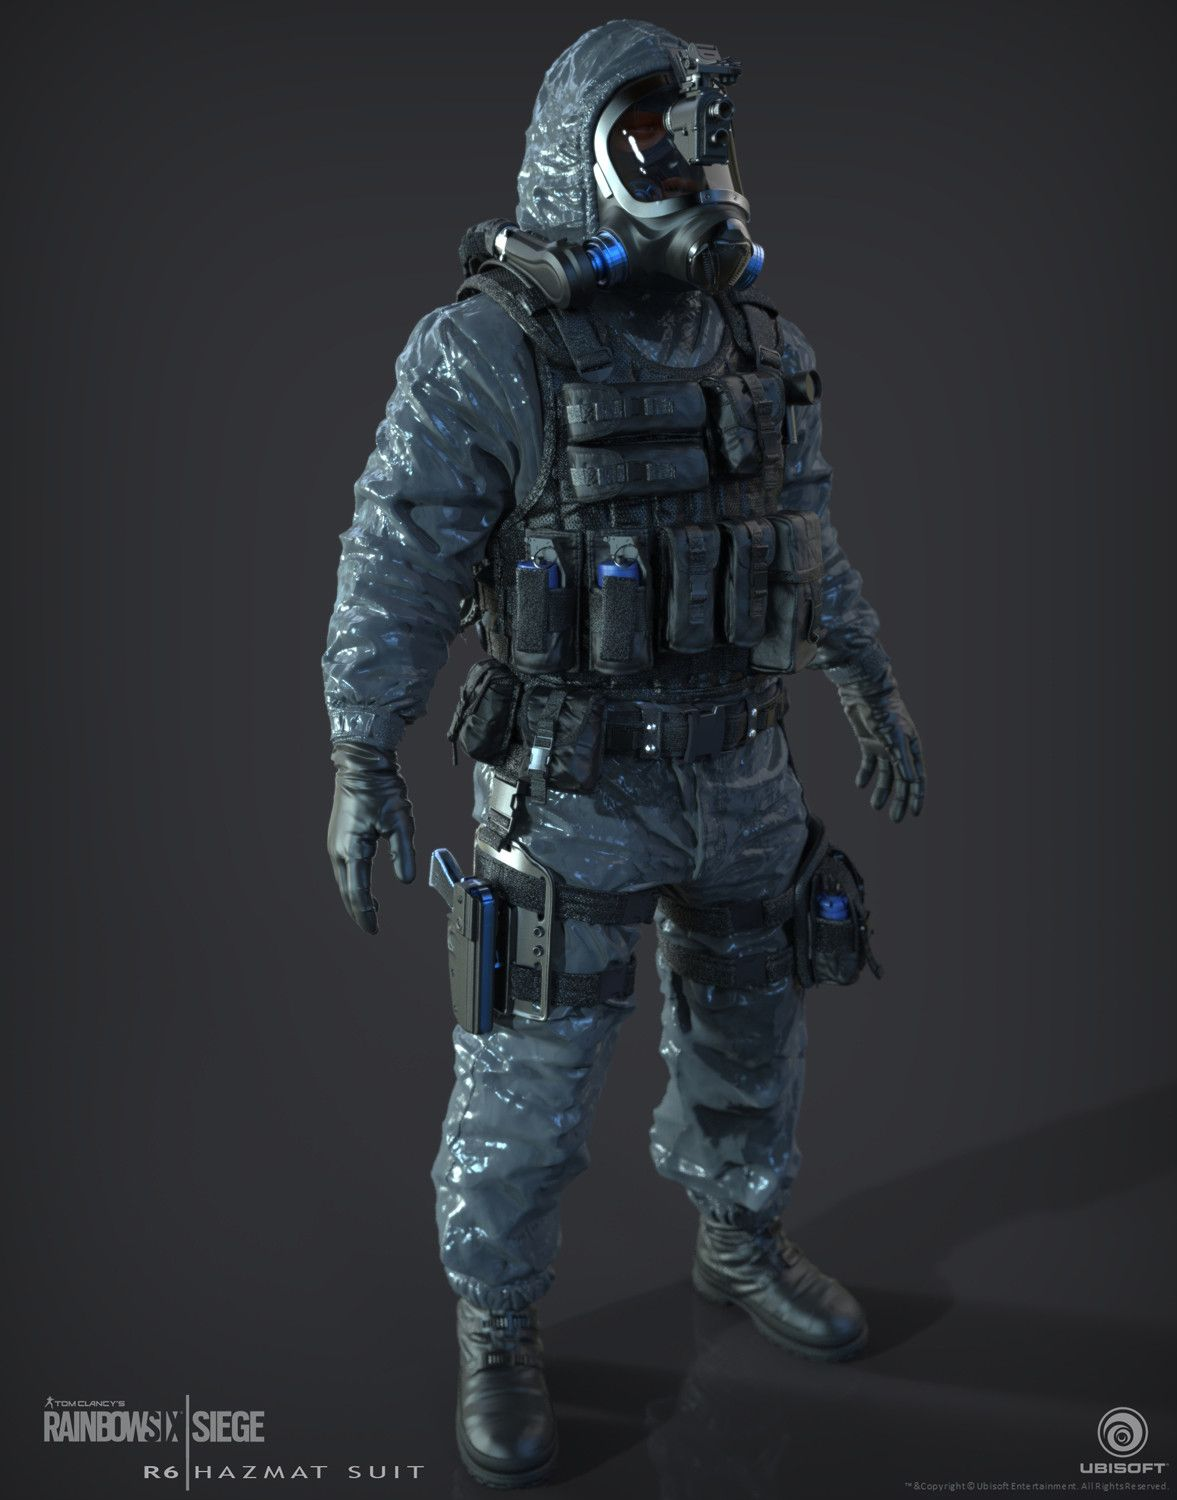 Hazmat Suit for Rainbow 6 | Siege. David Giraud helped out with some base assets.